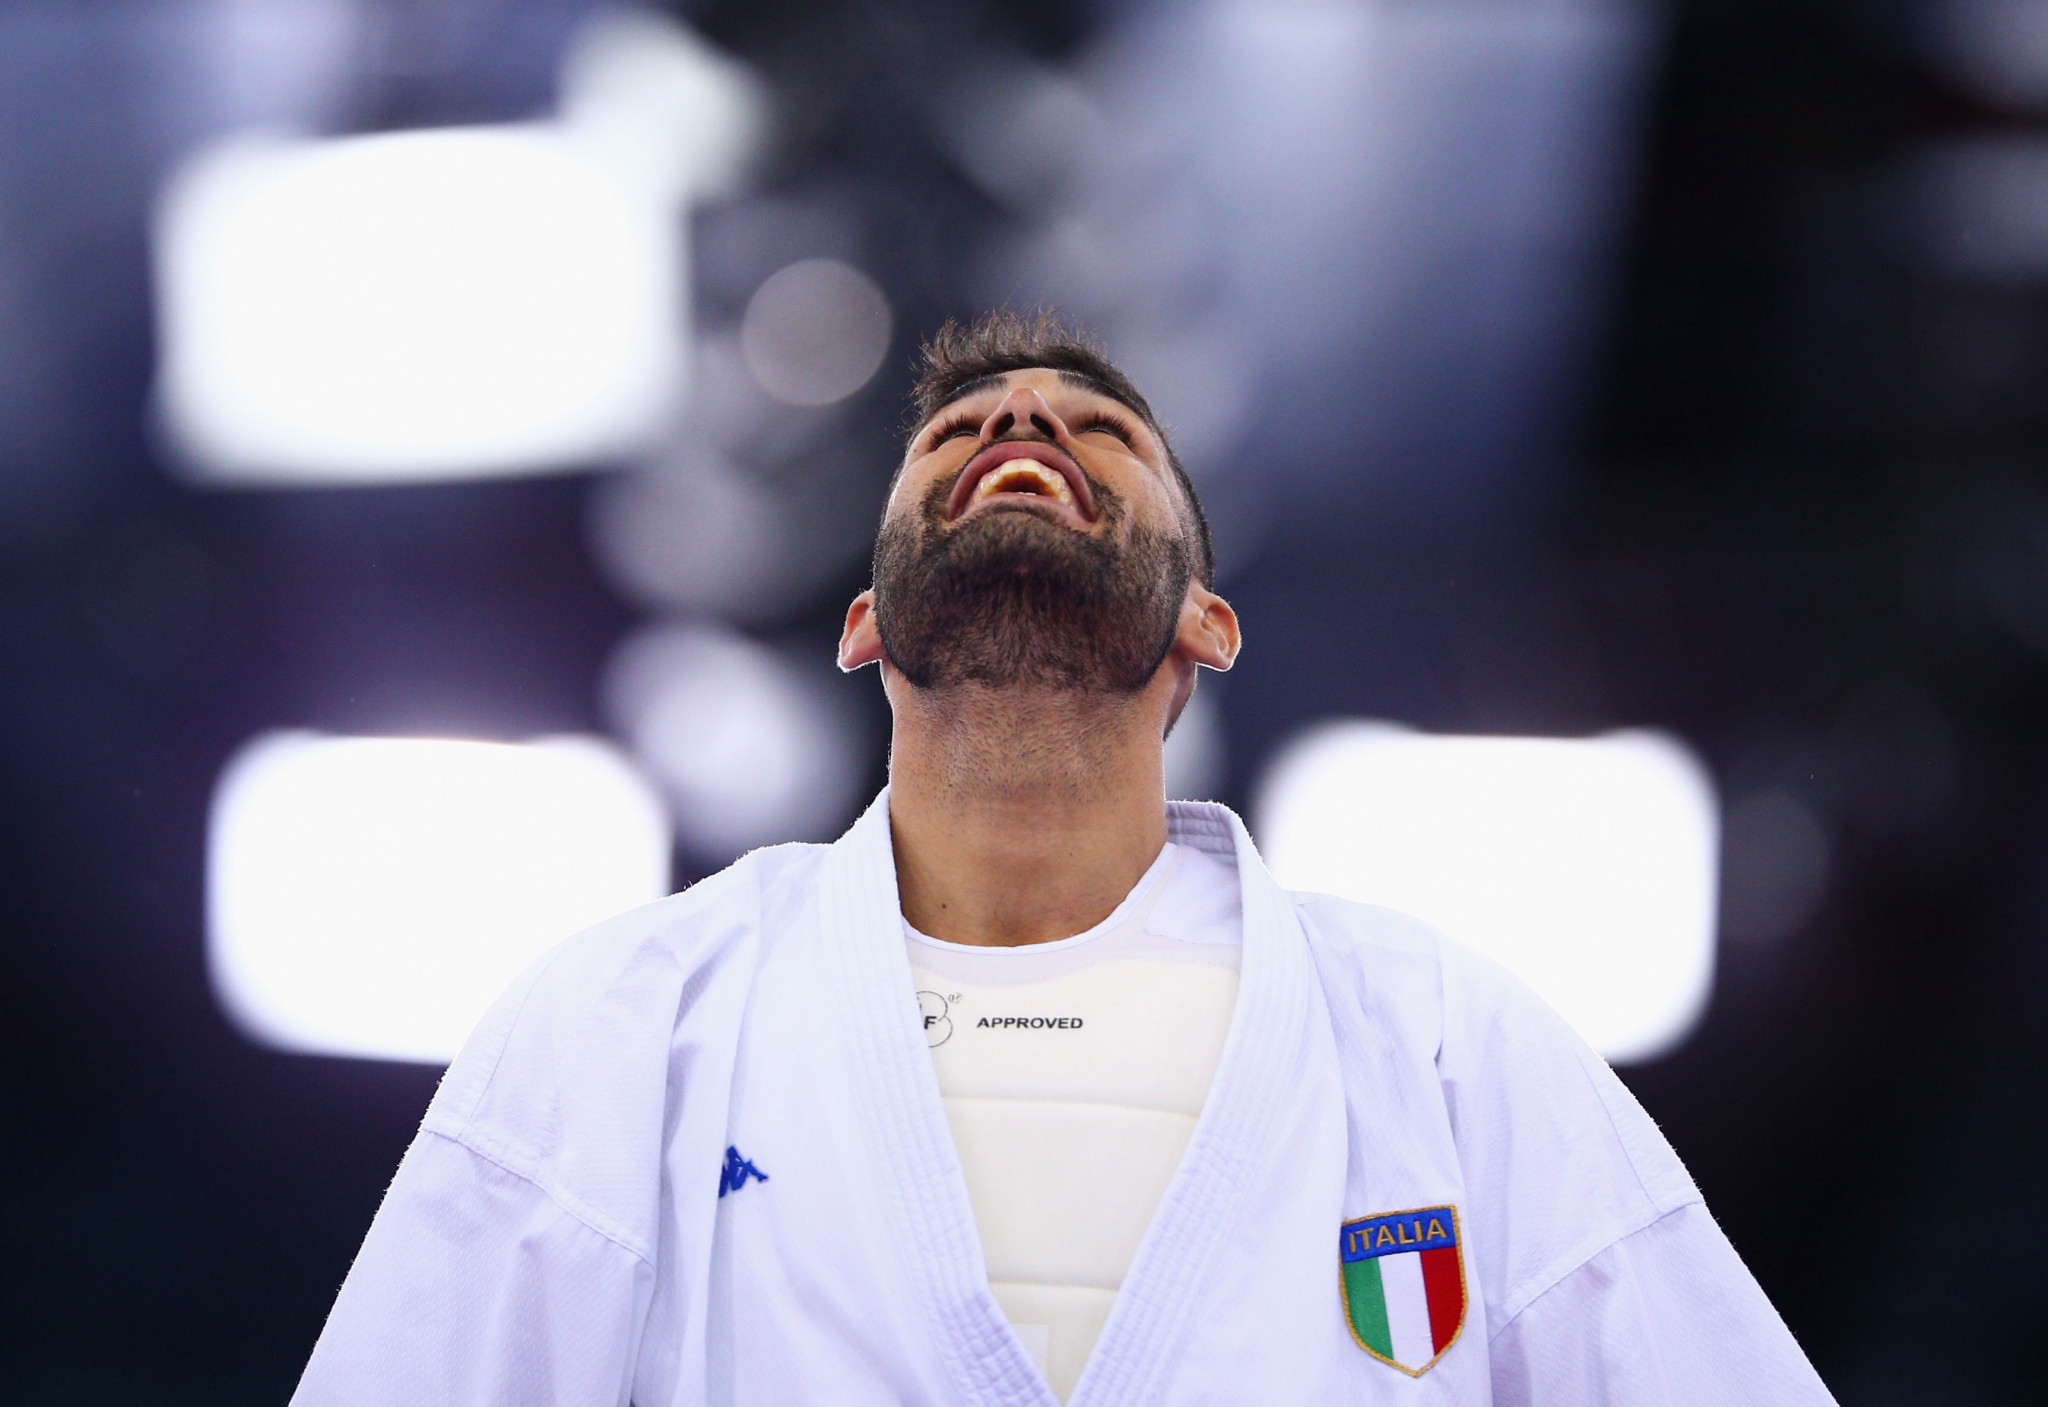 Tokyo 2020 places still up for grabs following Karate 1-Premier League event in Lisbon